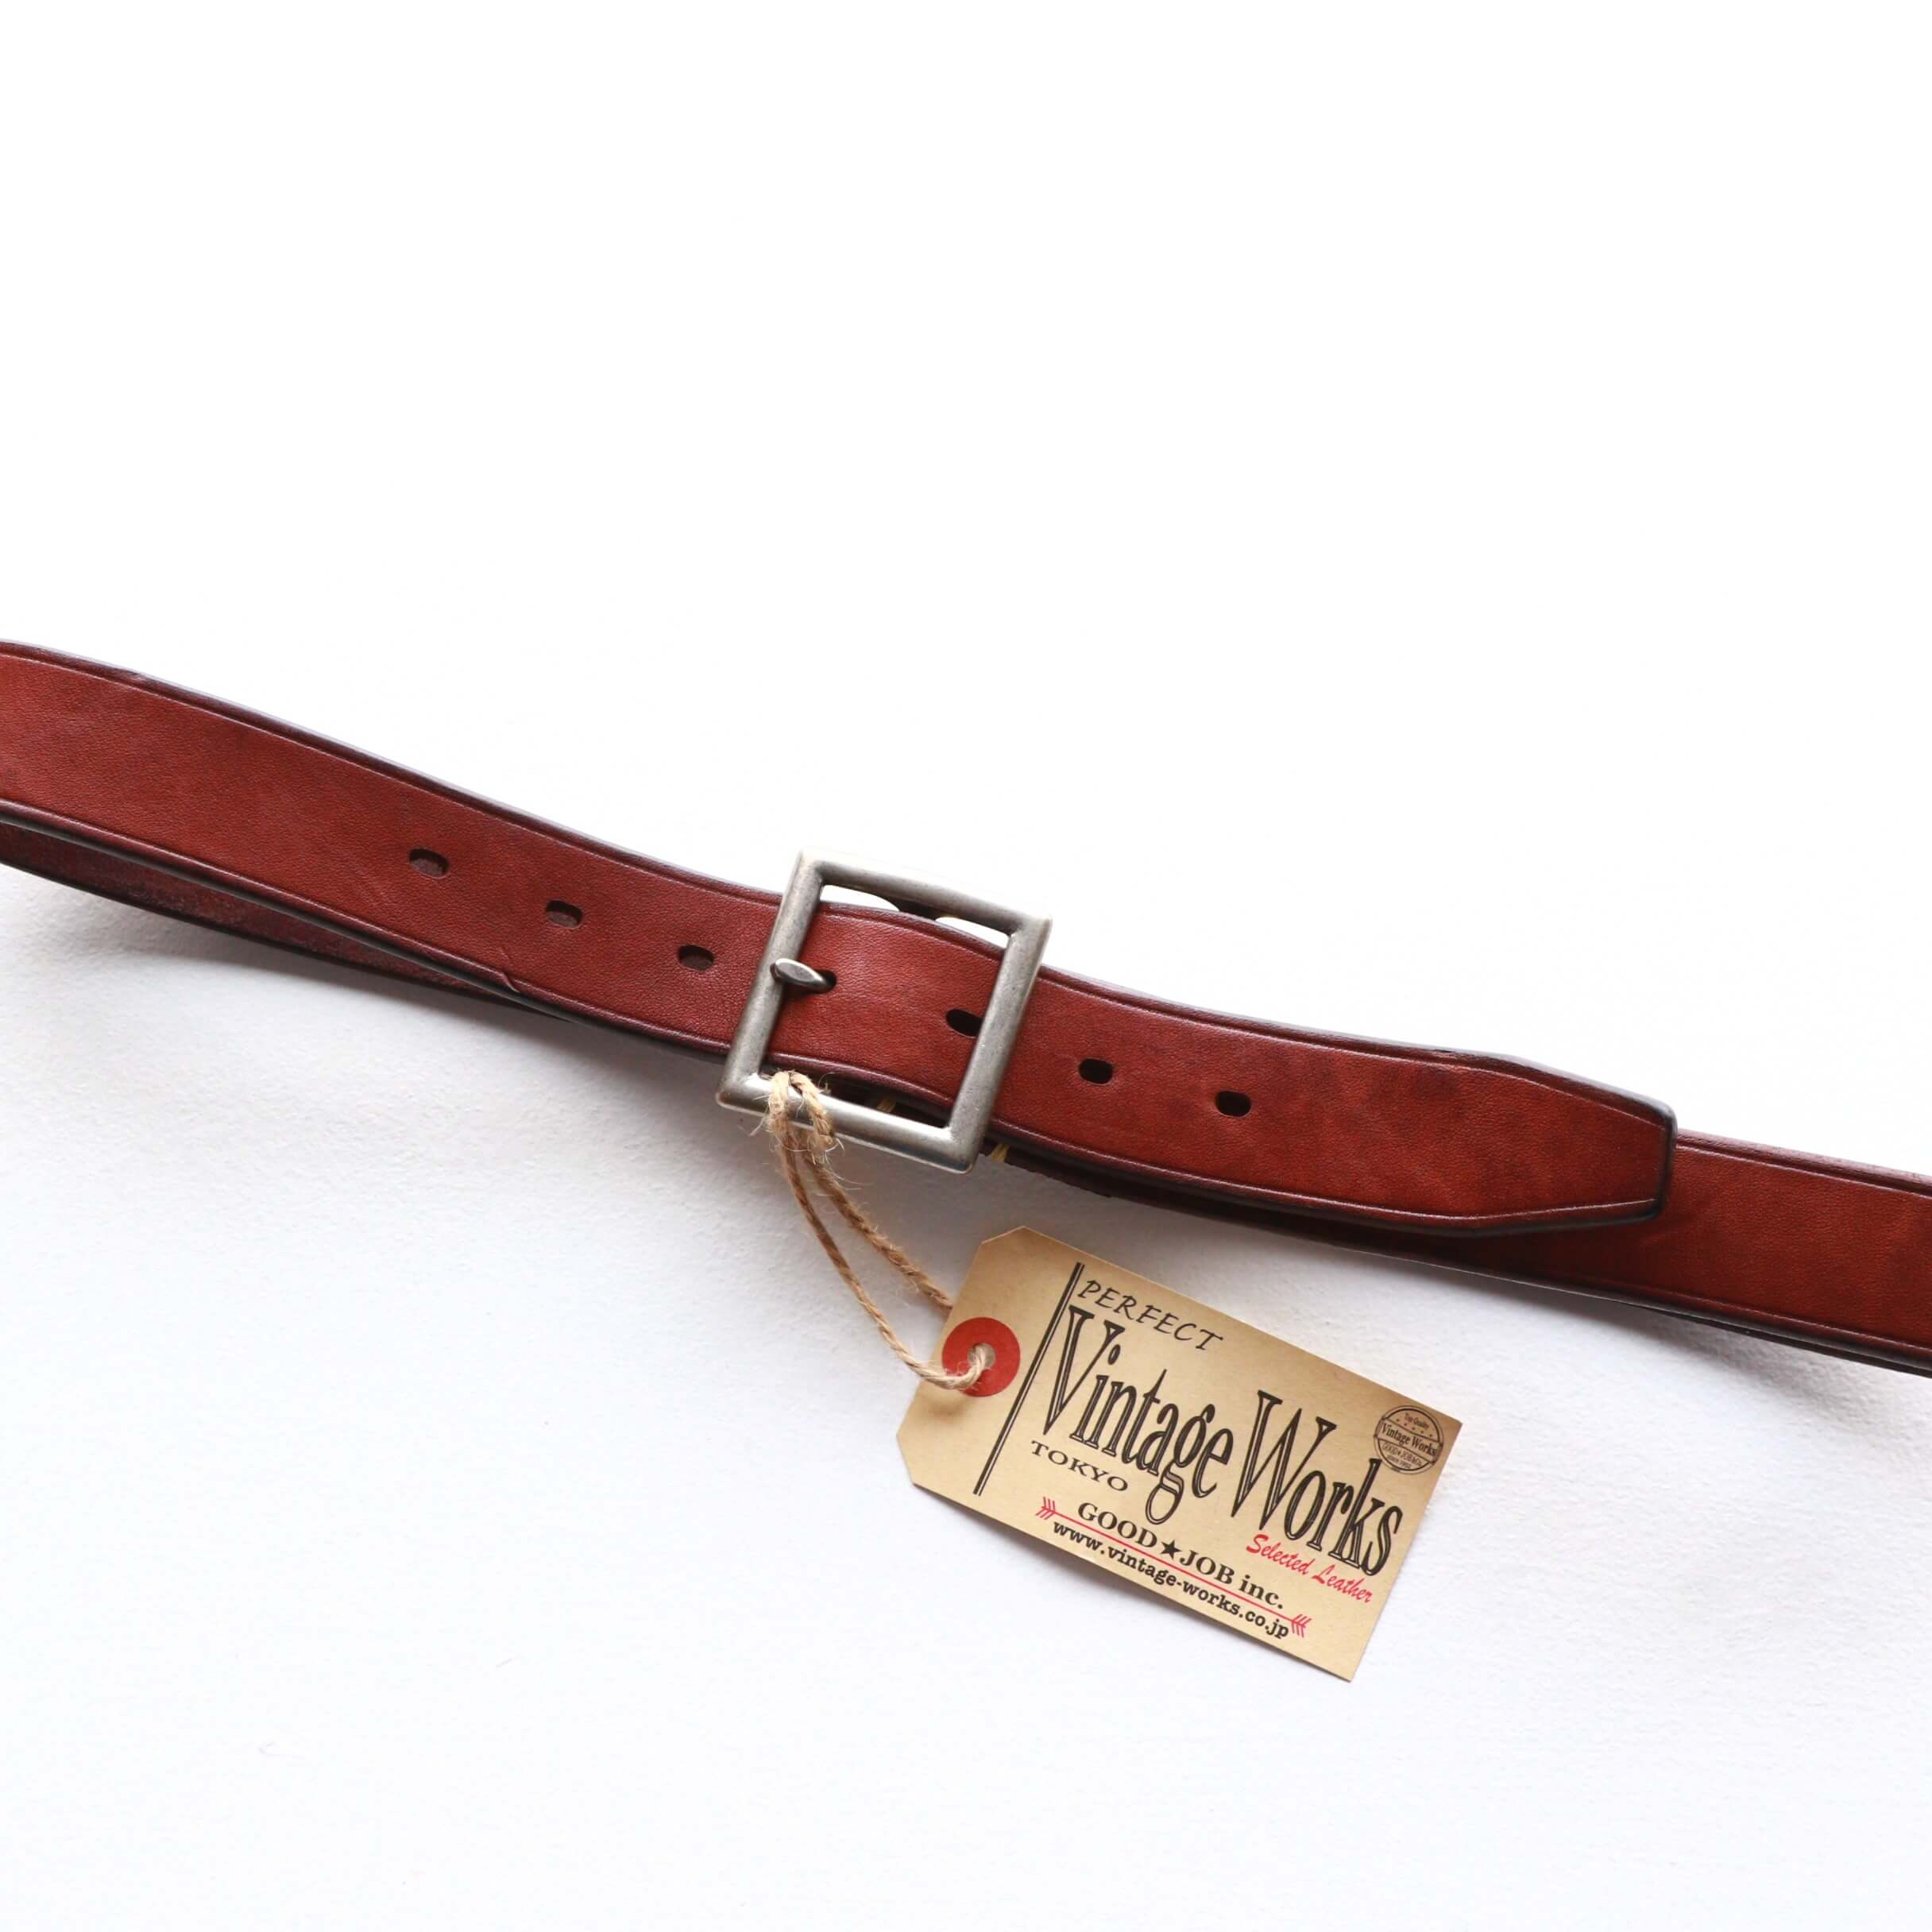 Vintage Works ヴィンテージワークス Leather belt 7Hole レザーベルト 7ホール DH5727